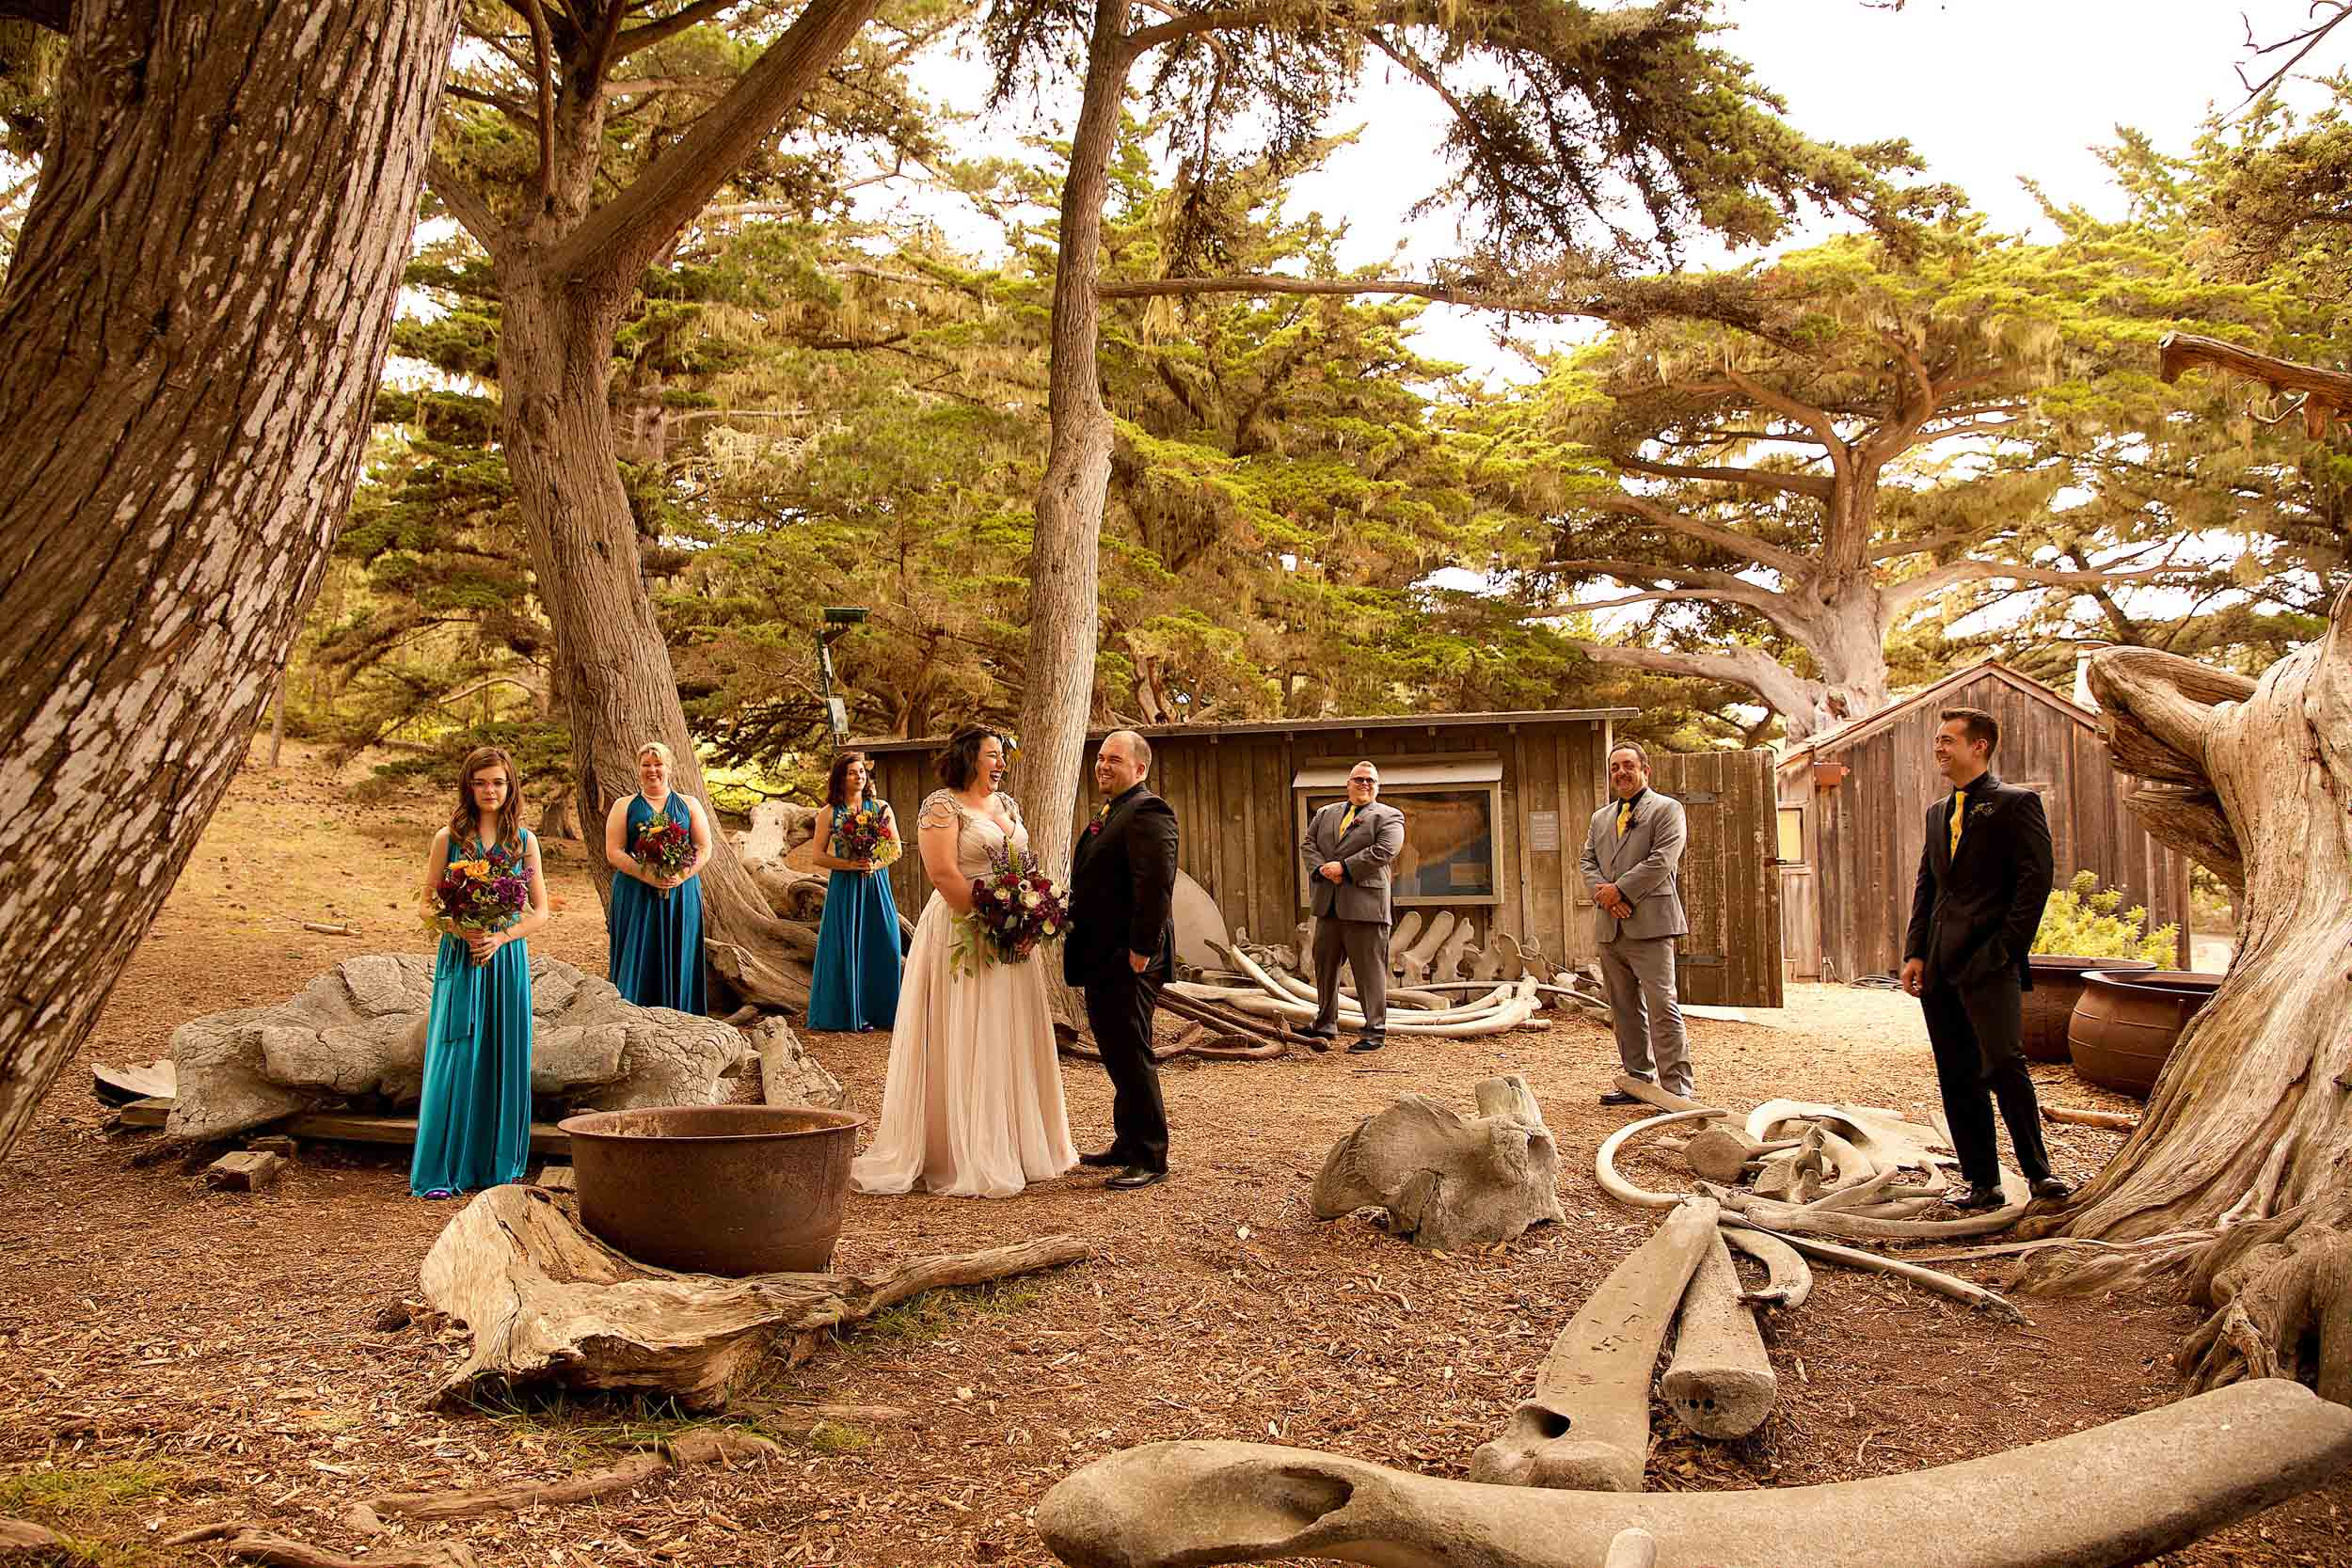 Bridal-party-laughing-in-front-of-Point-Lobos-whale-bones